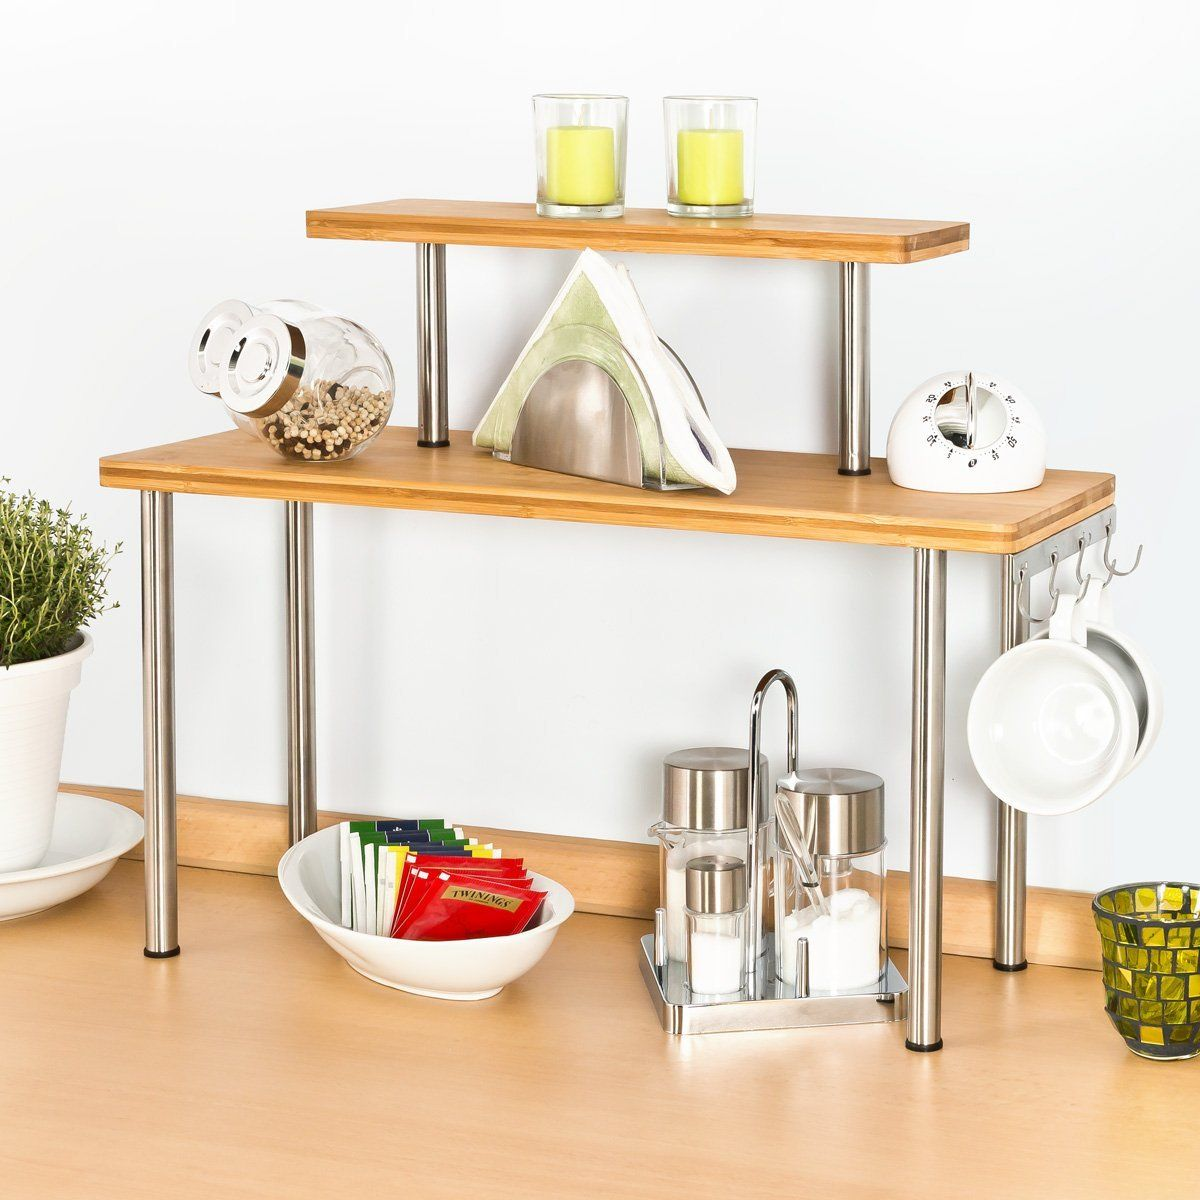 Bremermann Bamboo And Stainless Steel Kitchen Shelf Corner Shelf With Hooks Amazon De Kuche Haushalt Bambus Regal Kuchenprodukte Kuchenregal